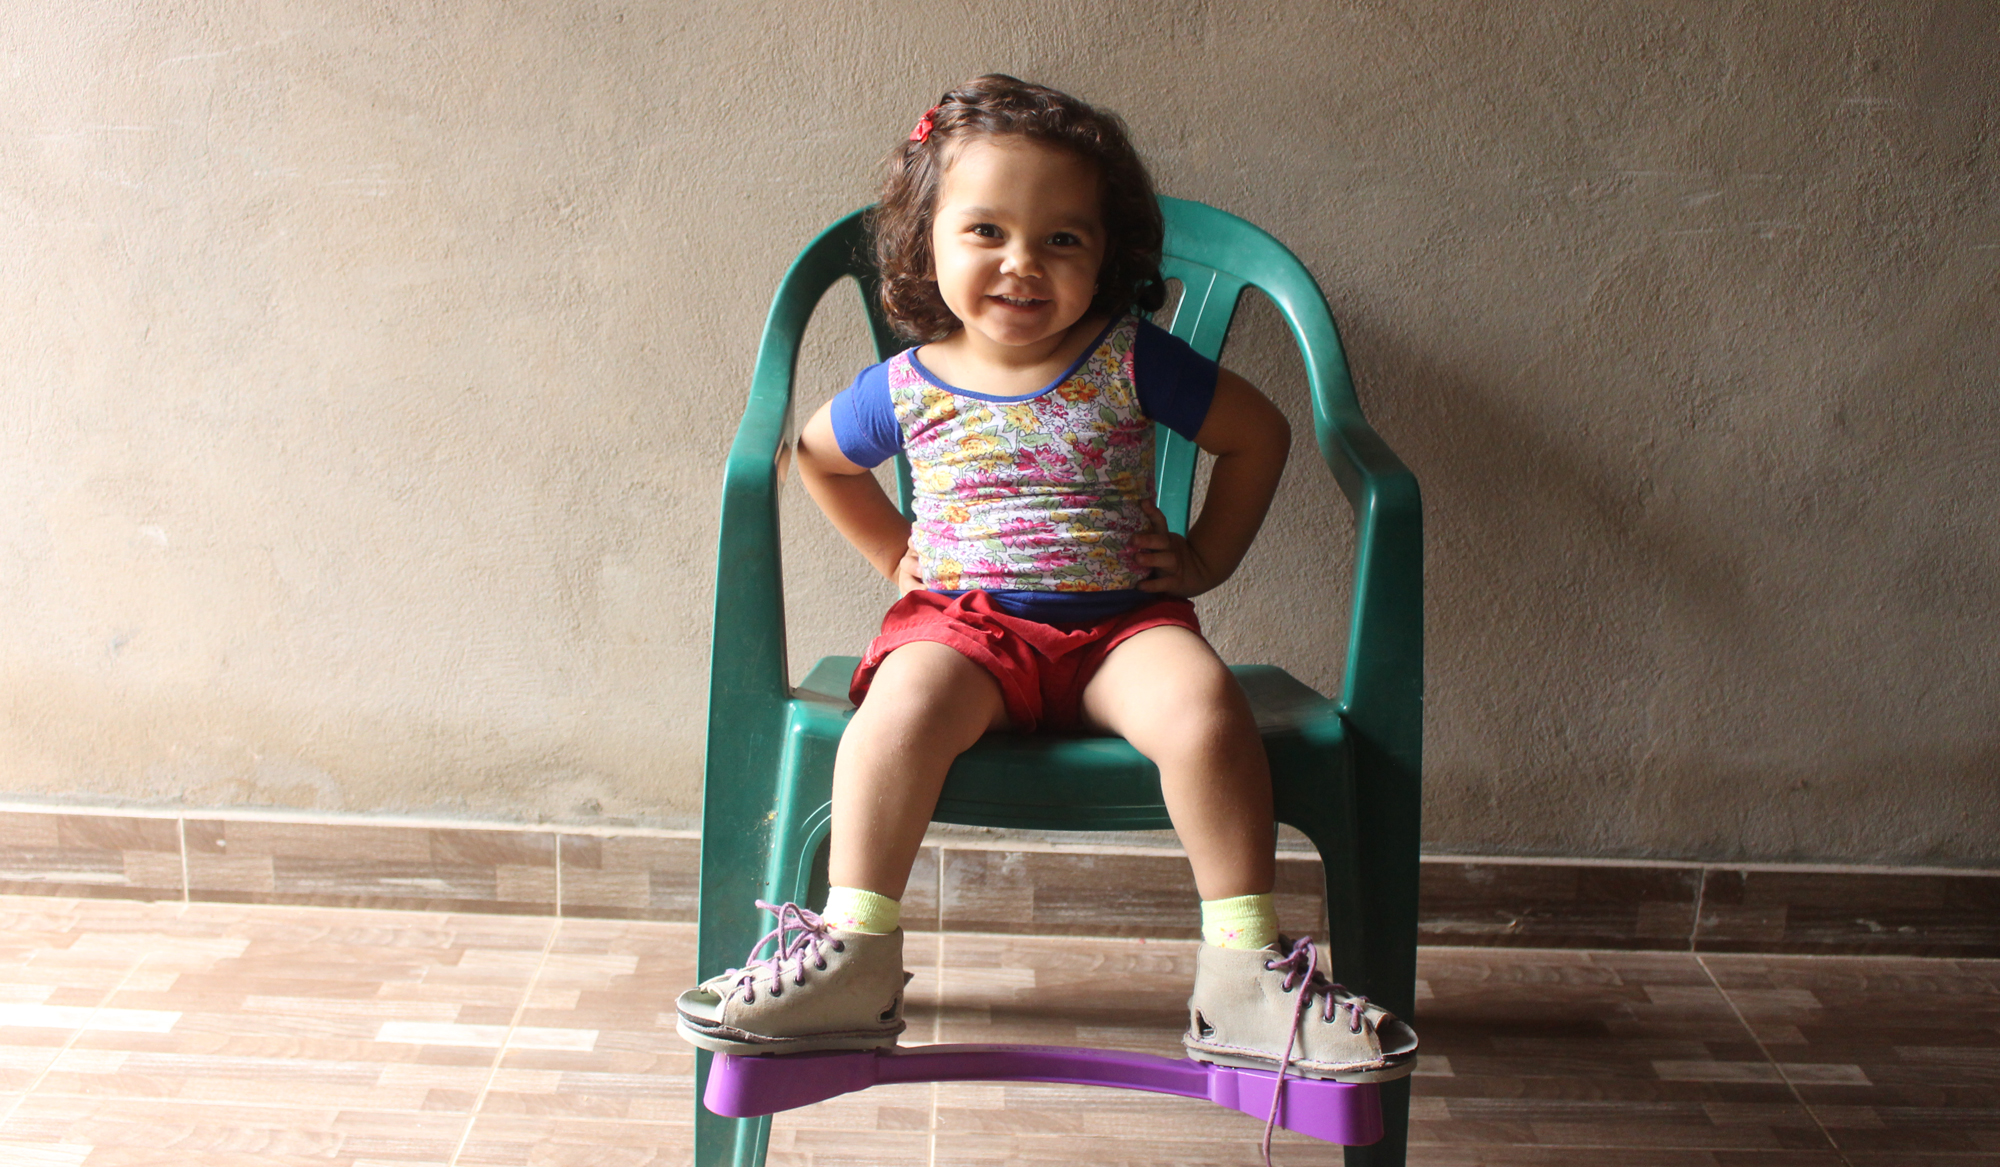 A child sat on a chair using a clubfoot brace